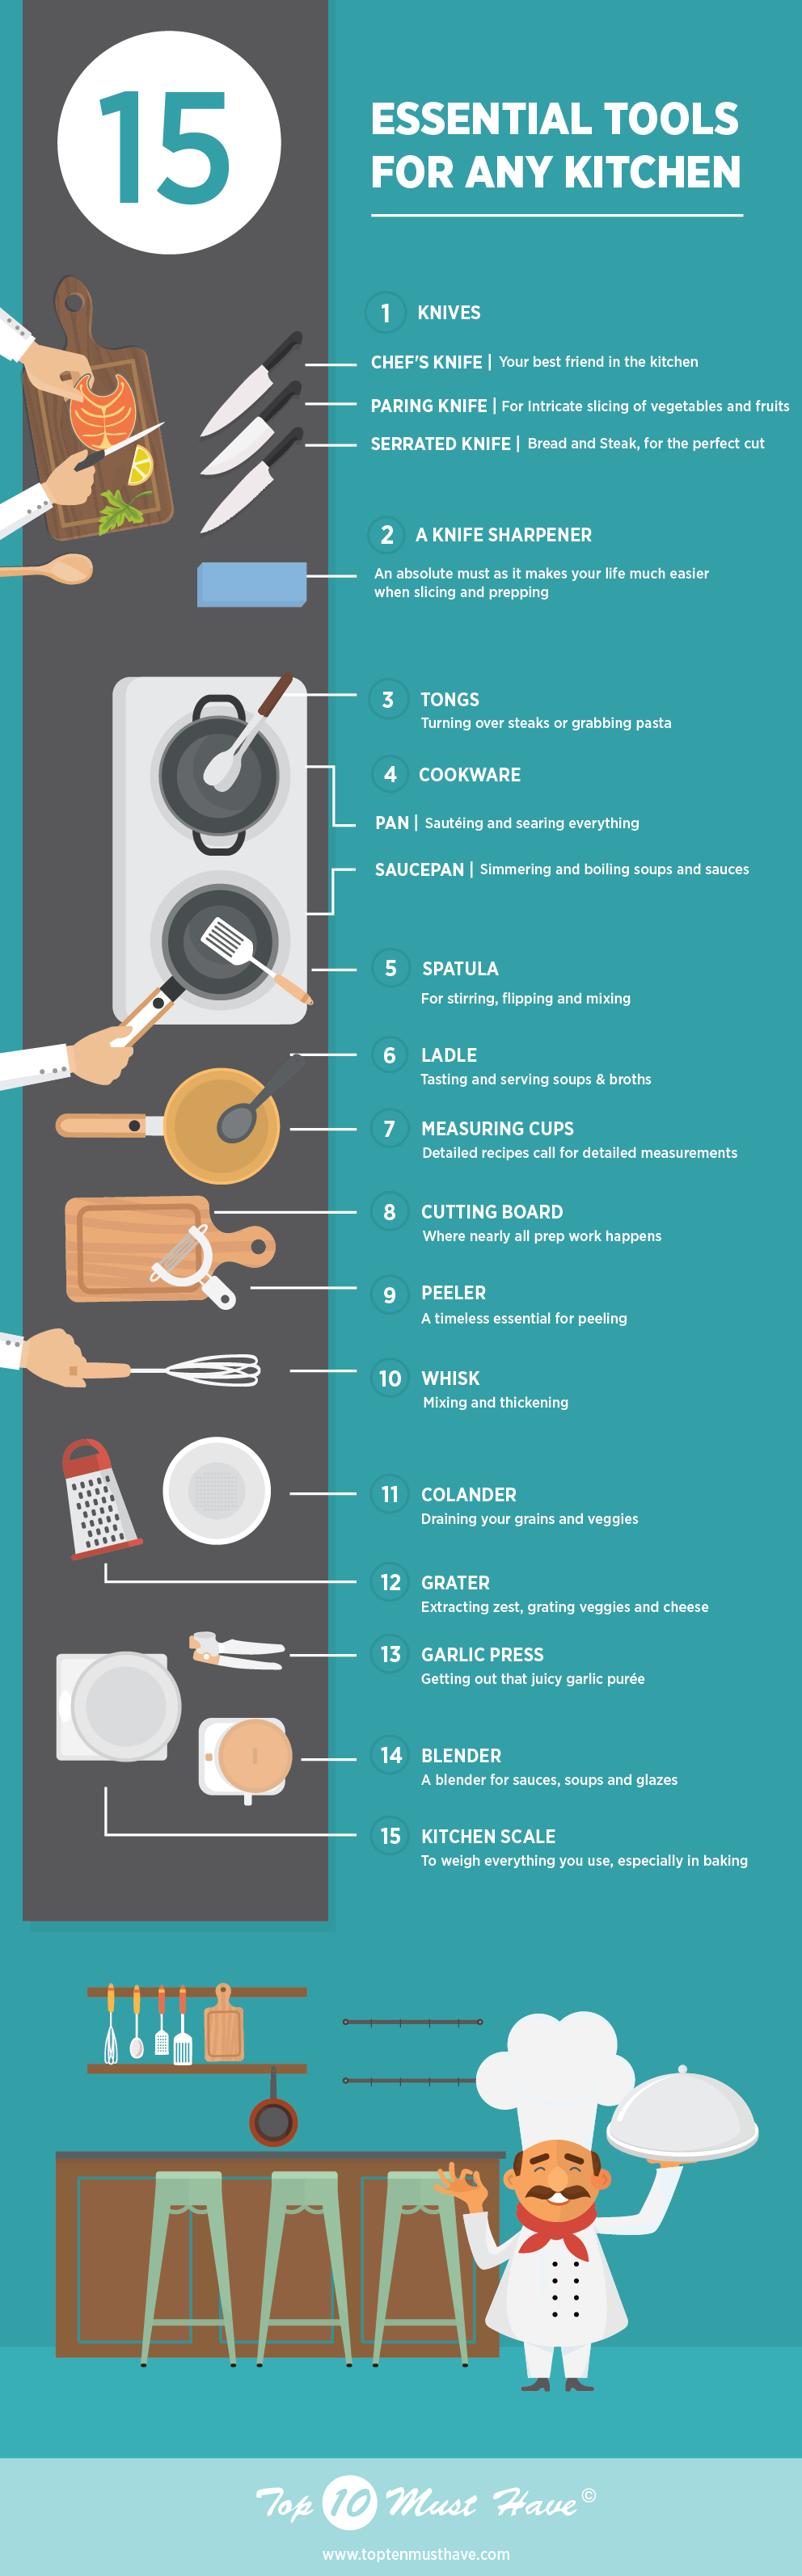 The 15 Essential Tools for any Kitchen!